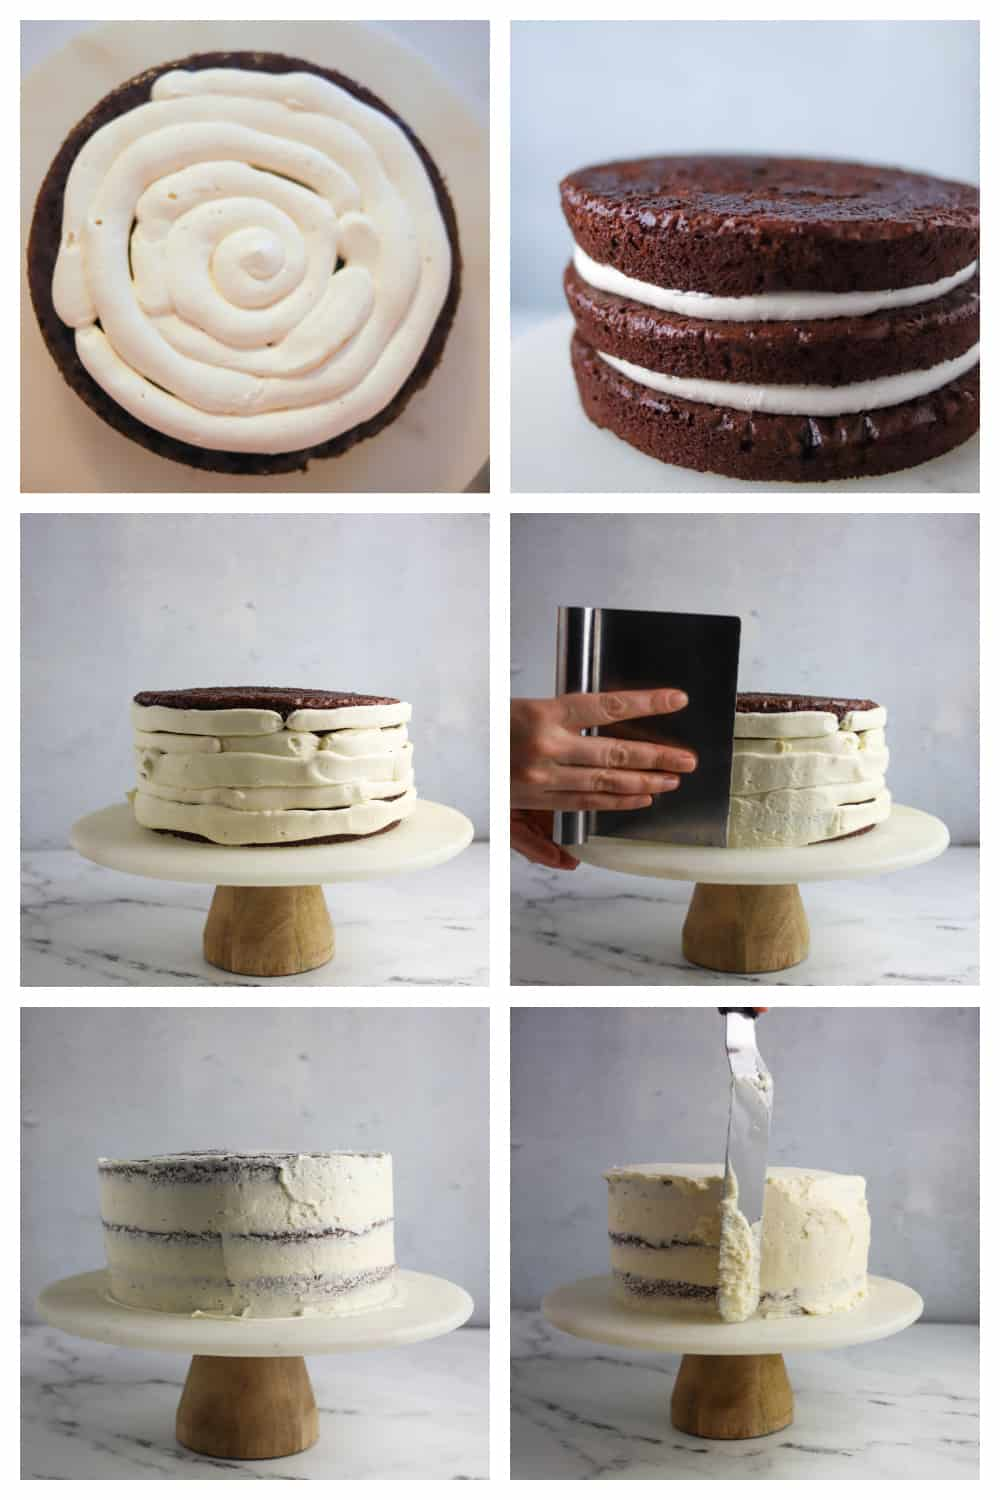 step by step photos of frosting Guinness cake